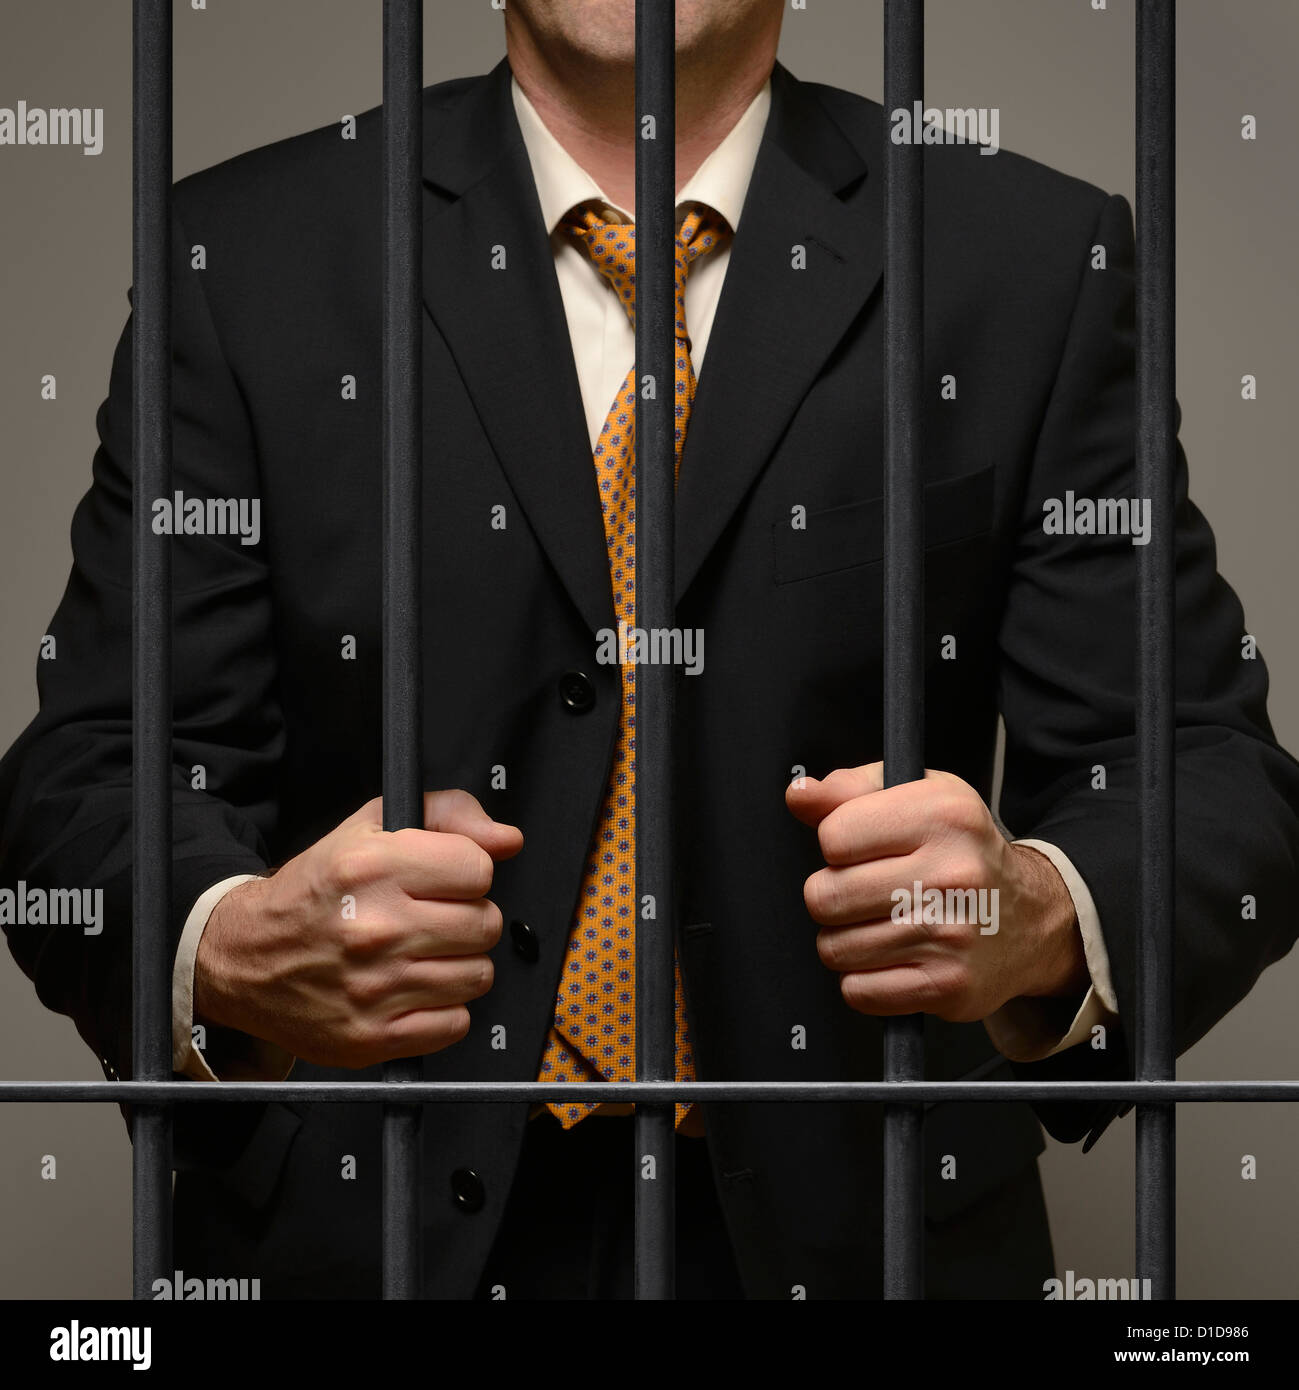 Jailed Business Man Behind Prison Bars. - Stock Image